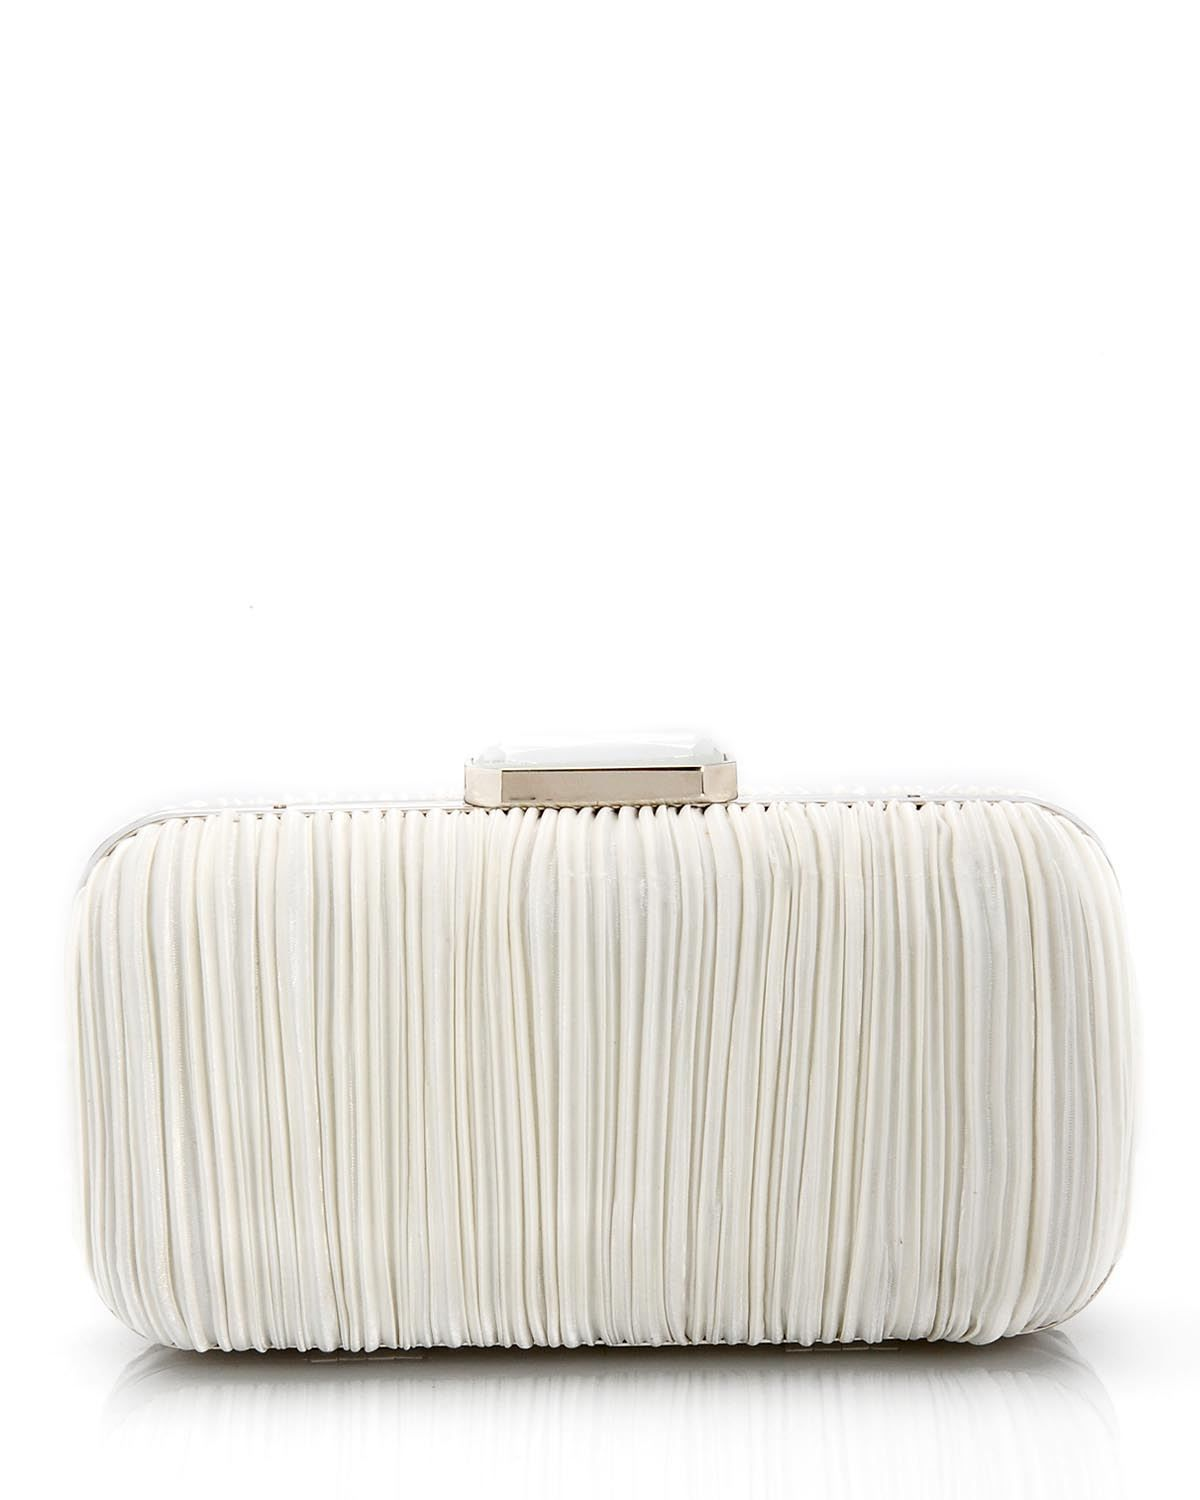 Jessica McClintock Clutch for $35 at Modnique.com. Start shopping now and save 44%. Flexible return policy, 24/7 client support, authenticity guaranteed